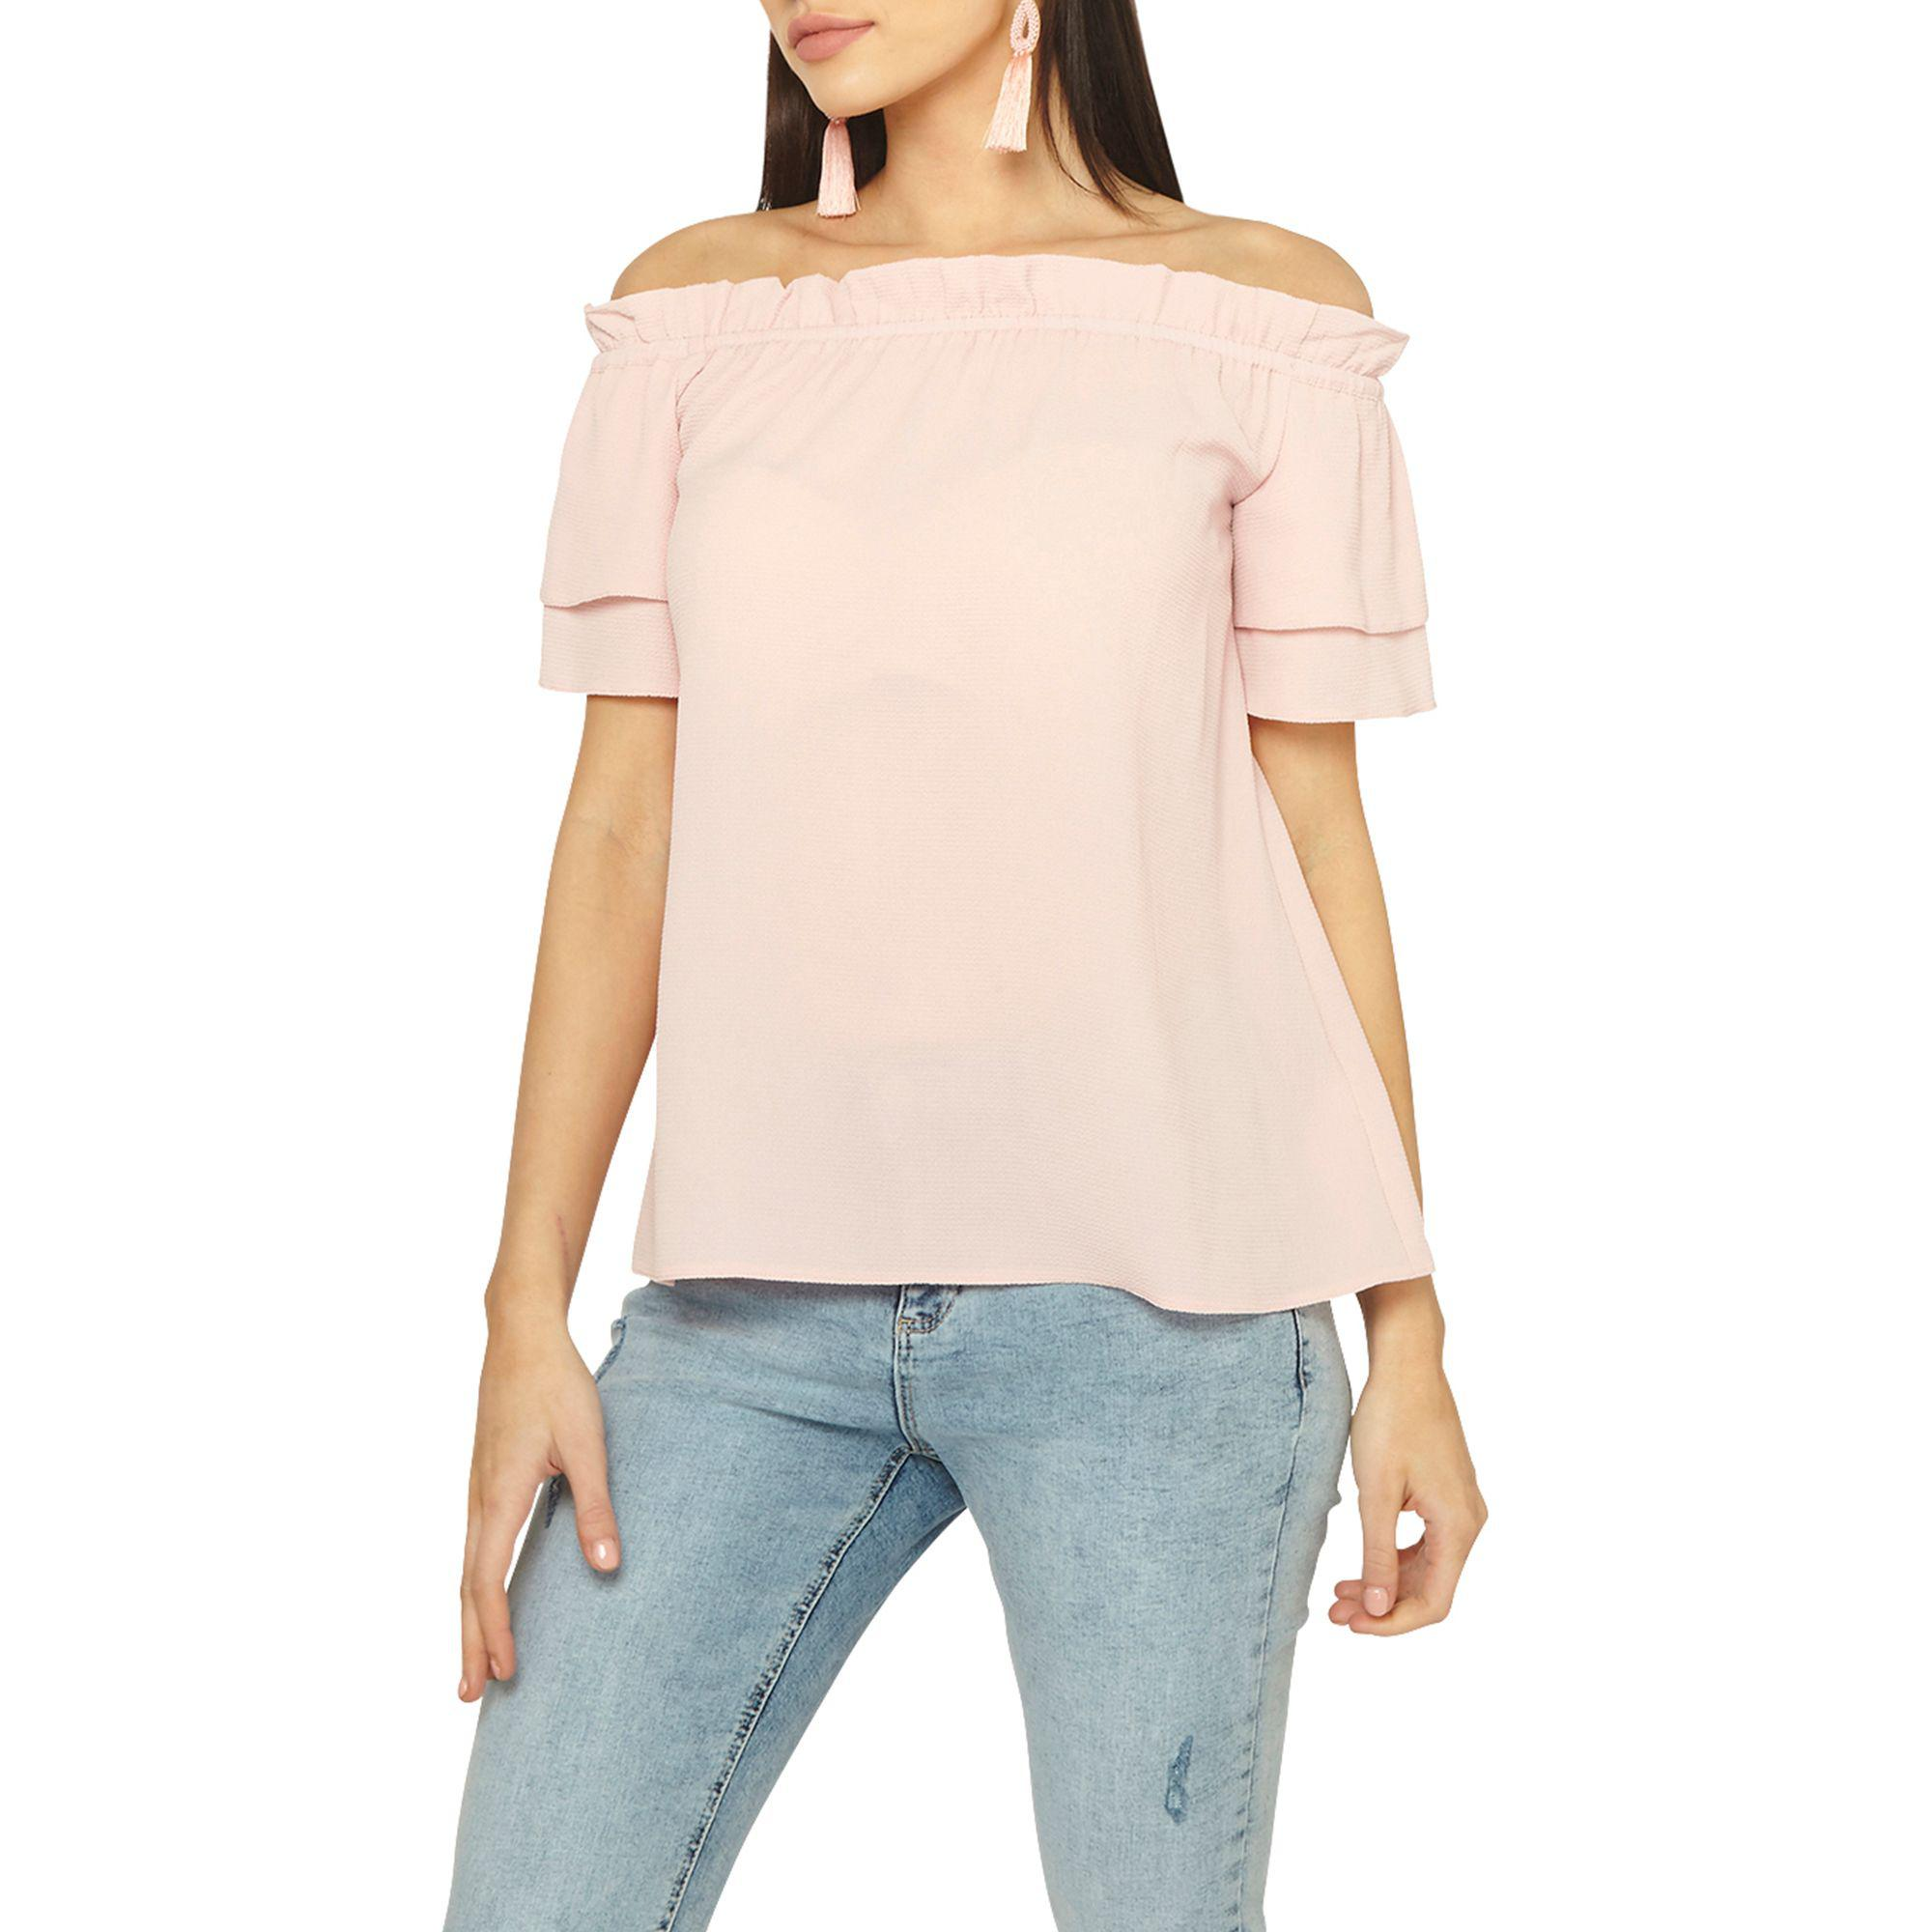 9e49d5fea37cf Dorothy Perkins Light Pink Frill Bardot Top in Pink - Lyst